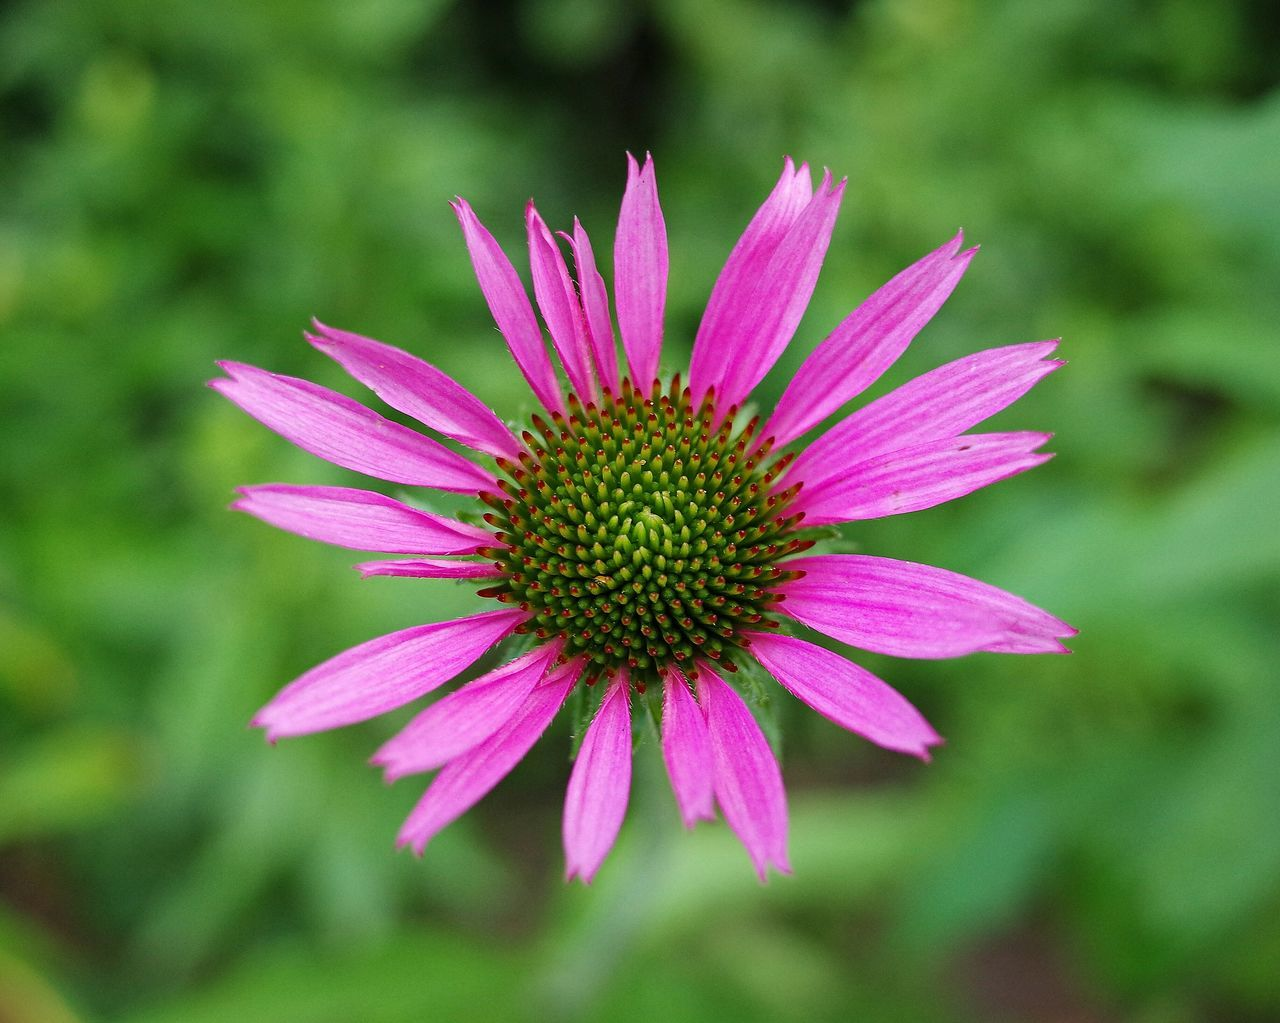 Prospect Park Brooklyn NY Summer 2016 Macro_collection Macro Photography Macro_flower Cone Flower Echinacea Purpurea Flowers Flower Collection Close Up Photography Ricoh Gr Brooklyn New York City